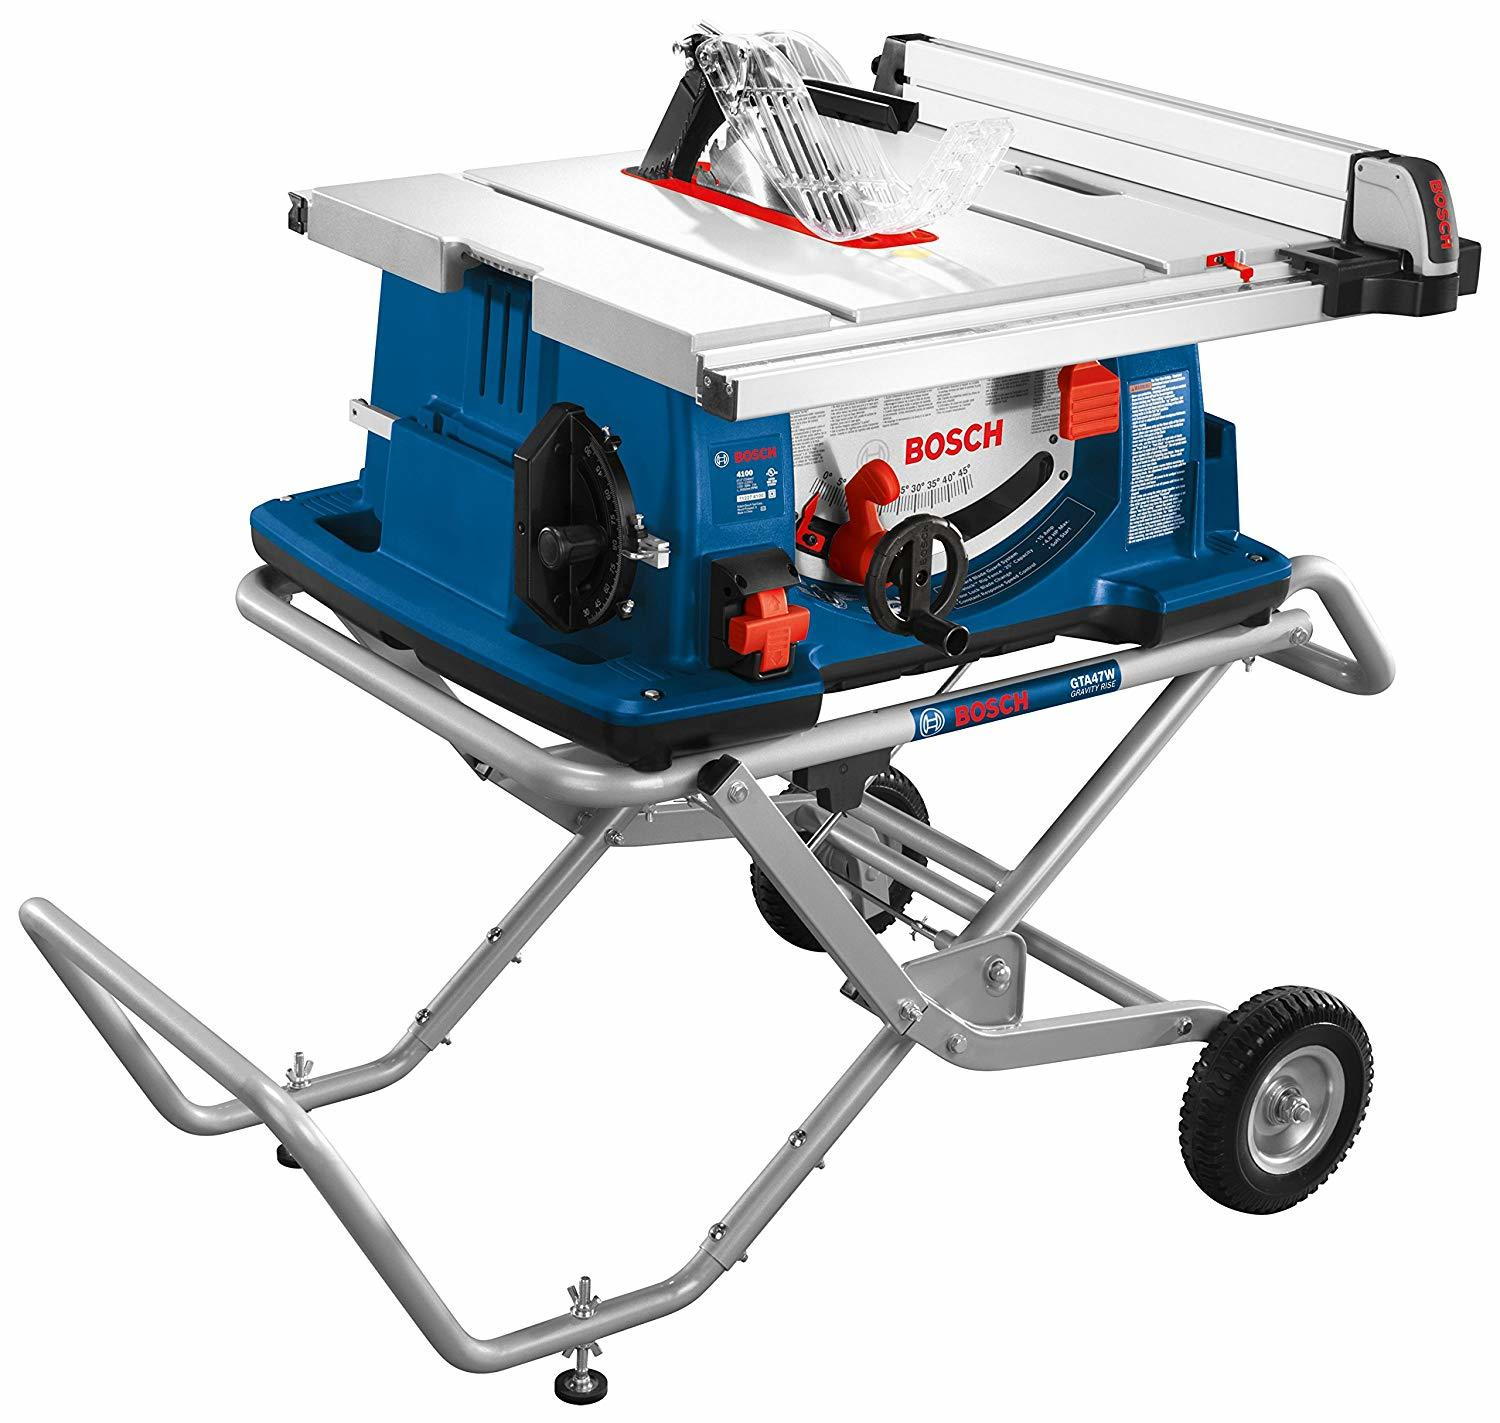 Bosch Power Tools Tablesaw 4100-10 - 15 Amp 10 In. Corded Portable Jobsite Table Saw with Gravity Rise Wheeled Stand